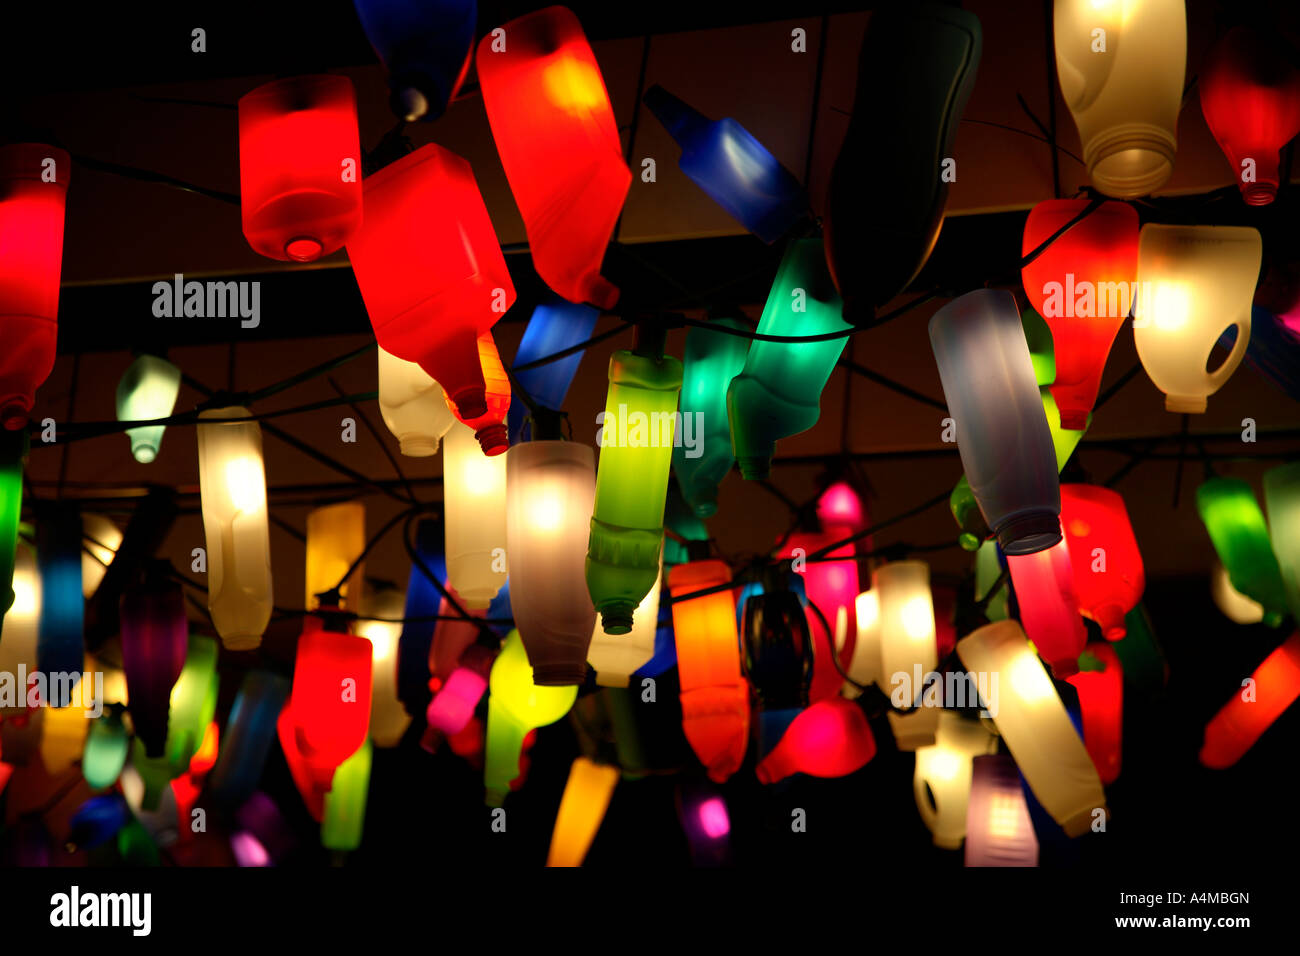 Plastic bottles used as lampshades at night. The South Bank, London, England, UK - Stock Image